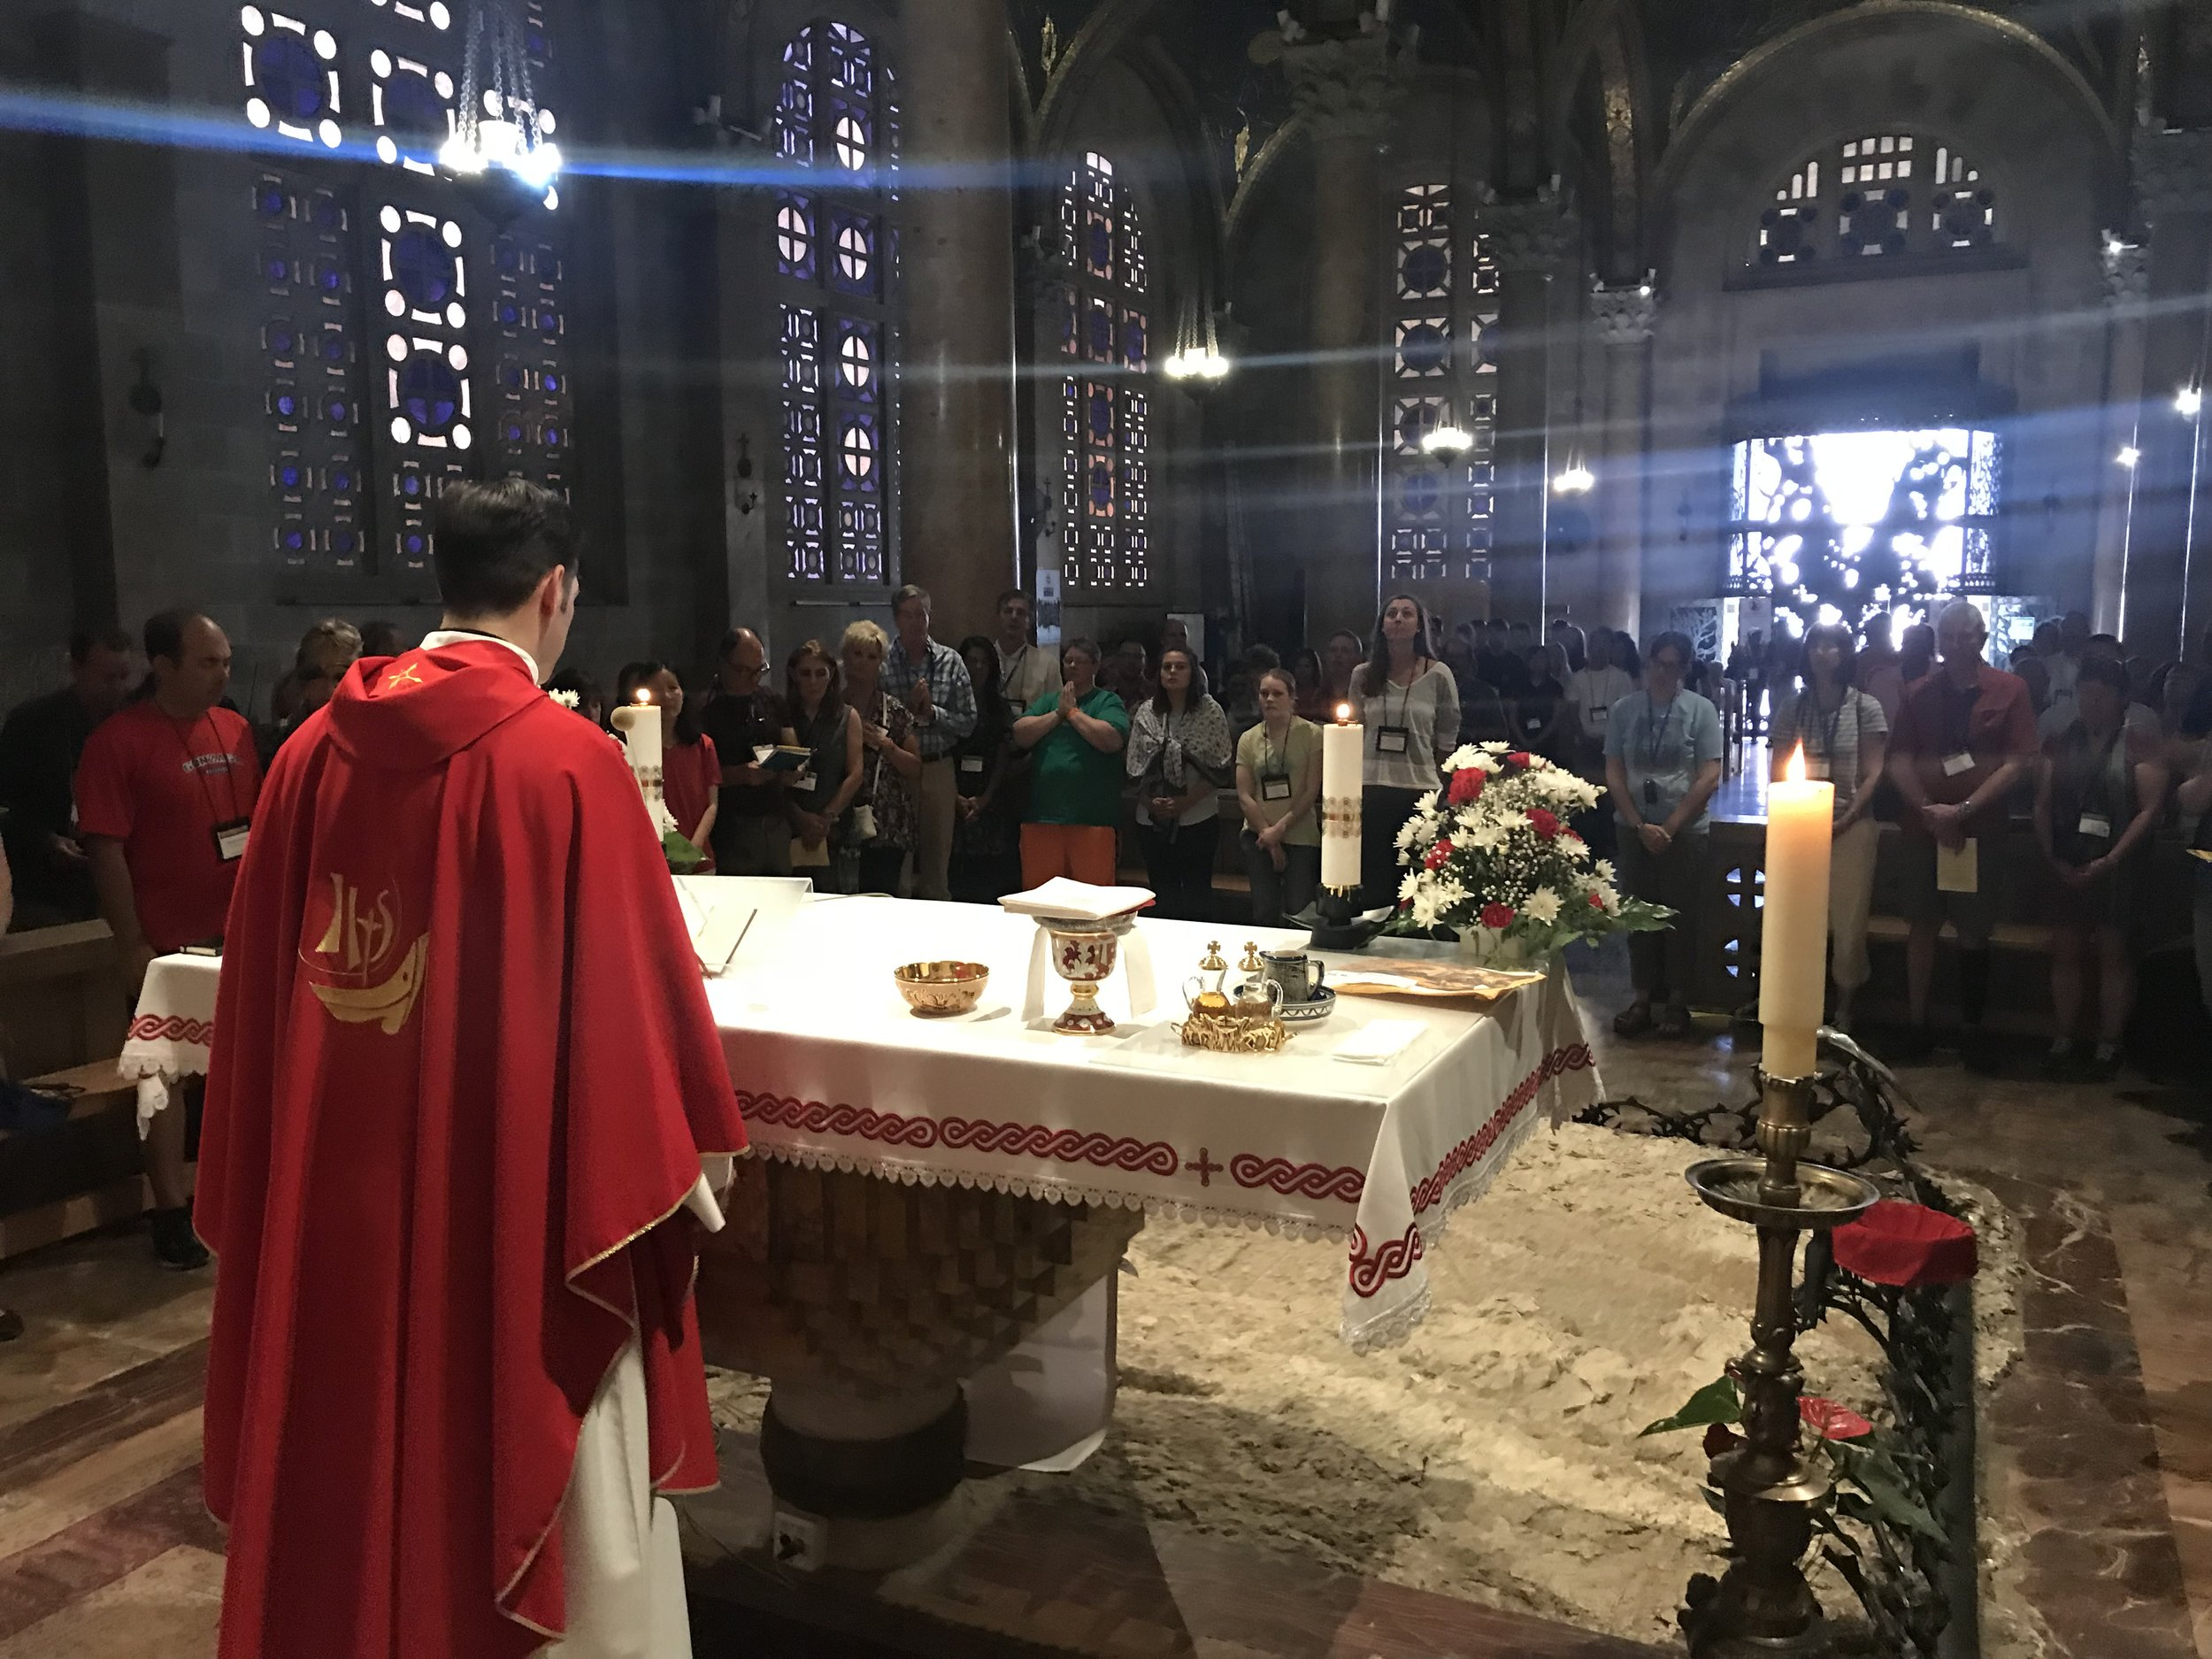 Mass at the Church of All Nations in the Garden of Gethsemane